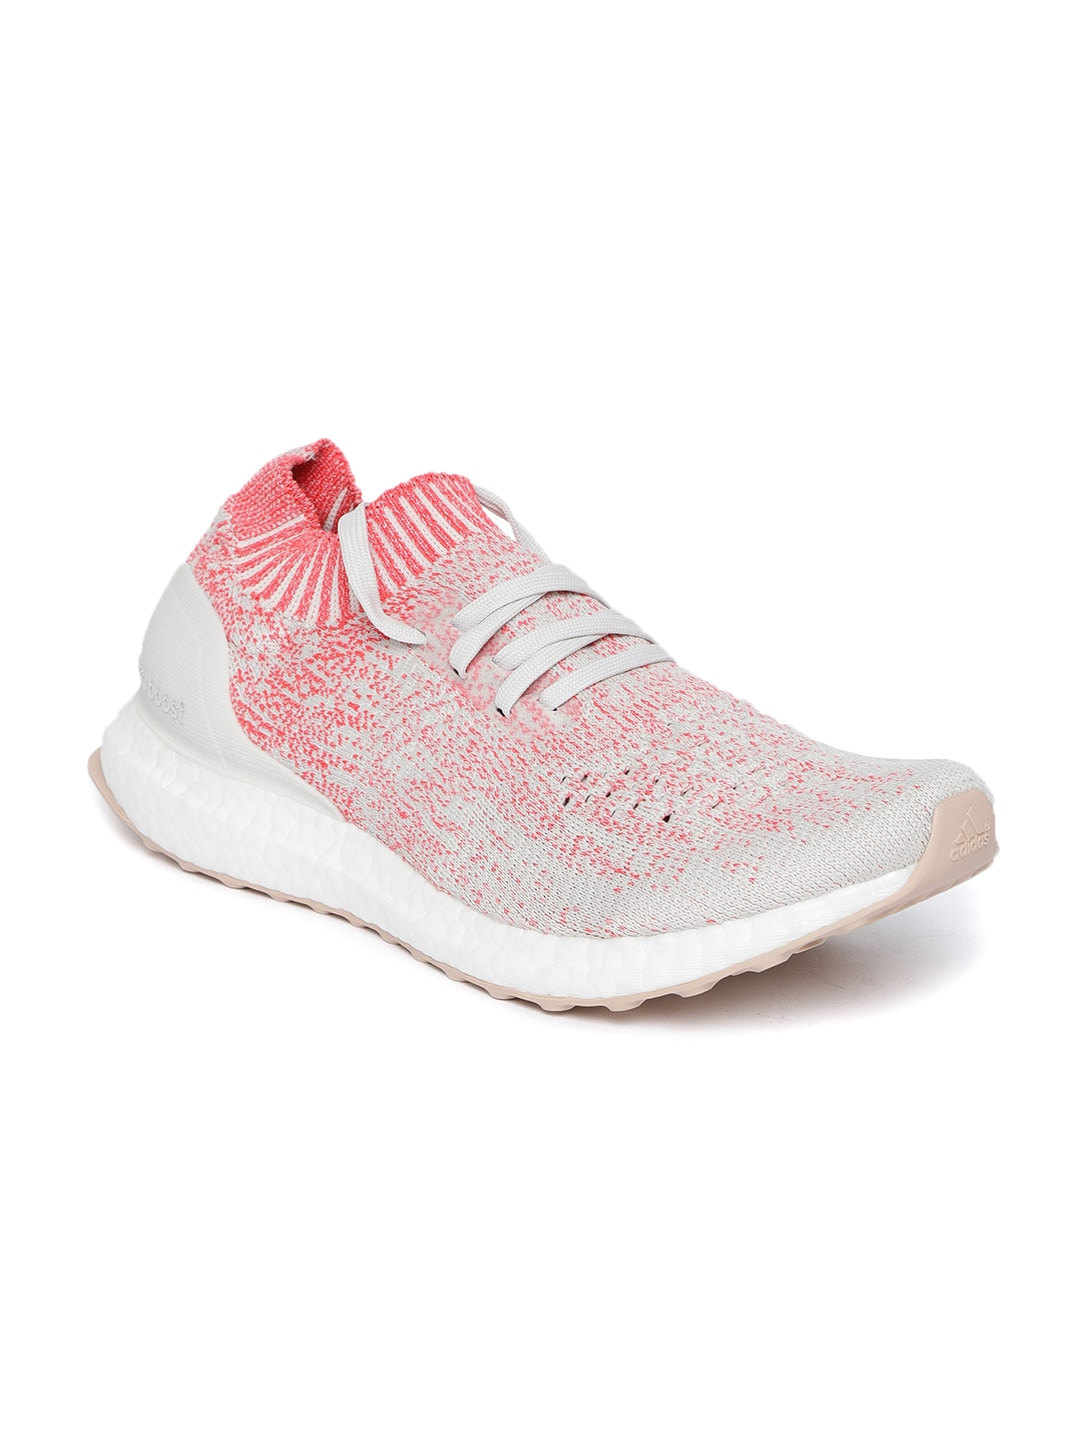 7006e957aa Women s Adidas Shoes - Buy Adidas Shoes for Women Online in India